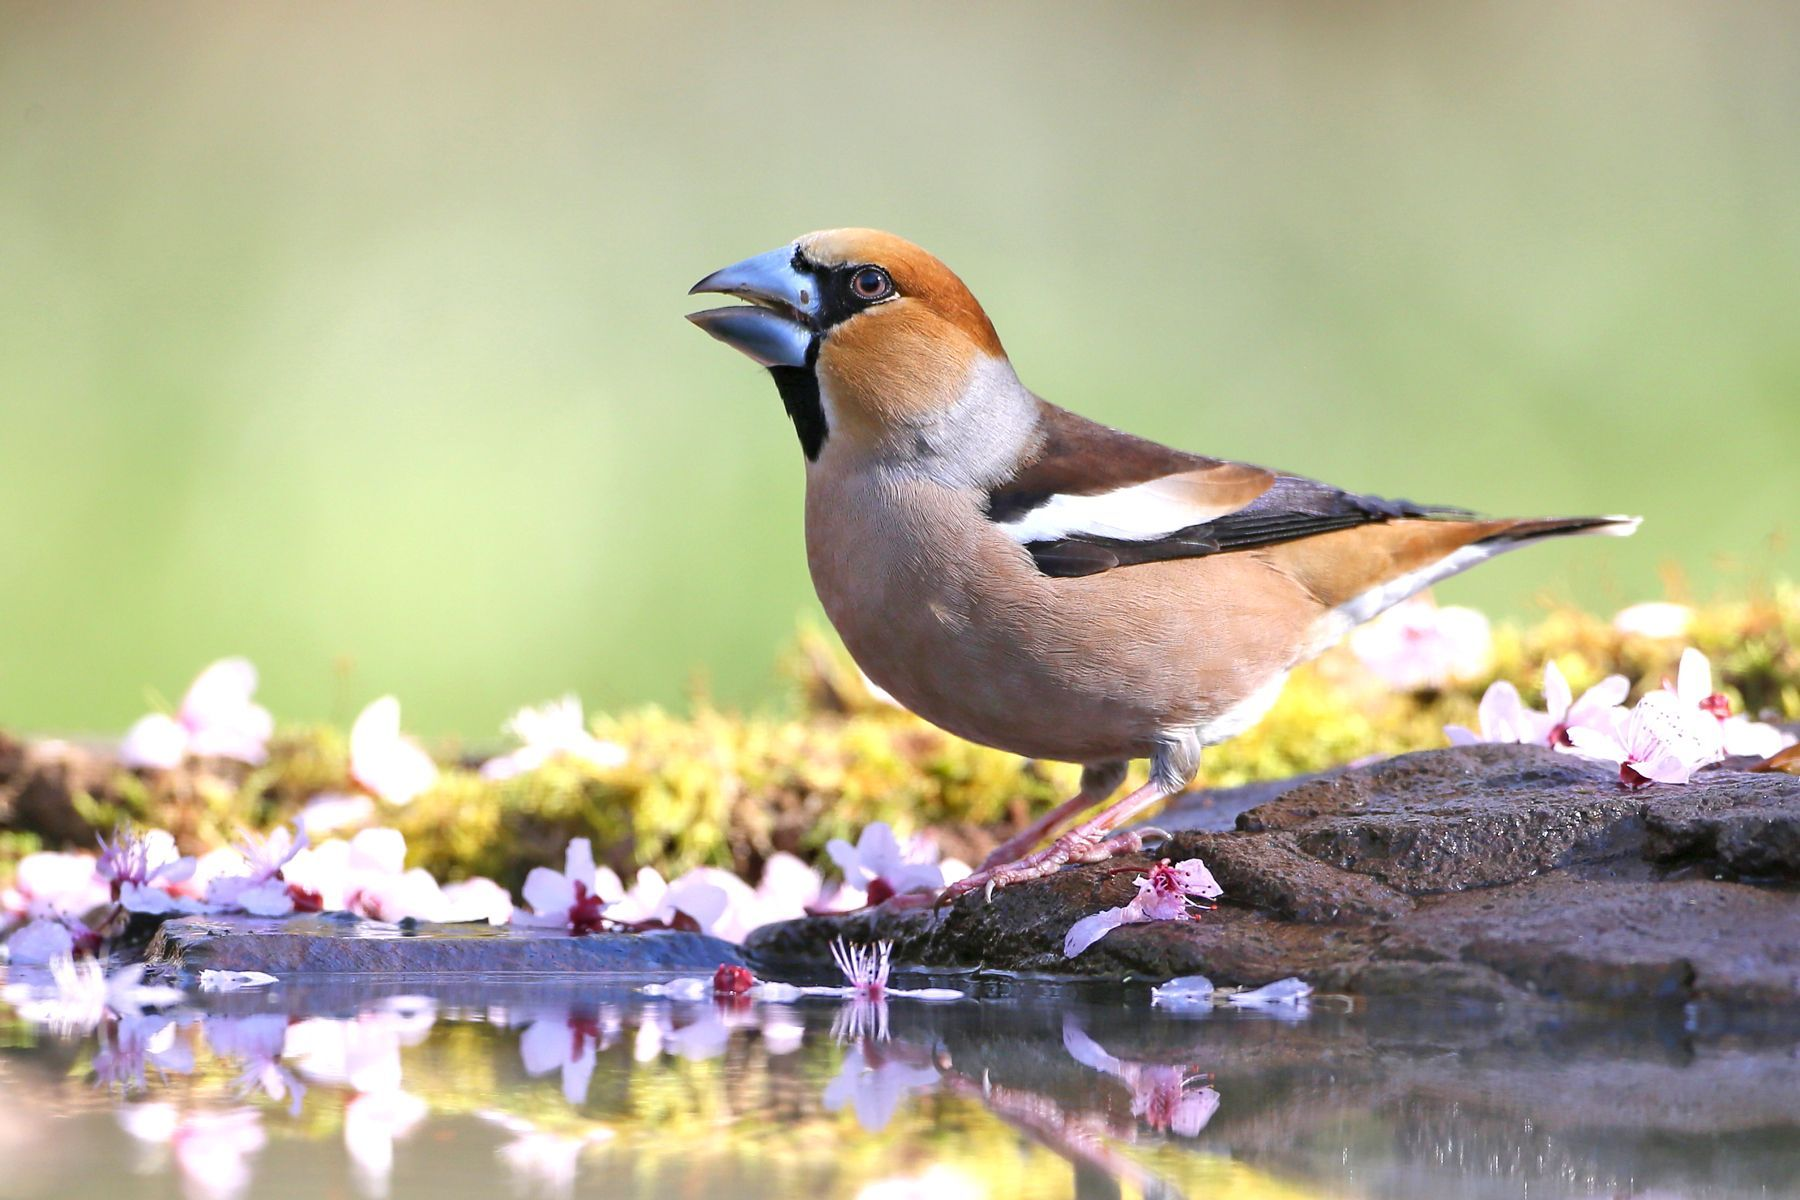 The impressive Hawfinch